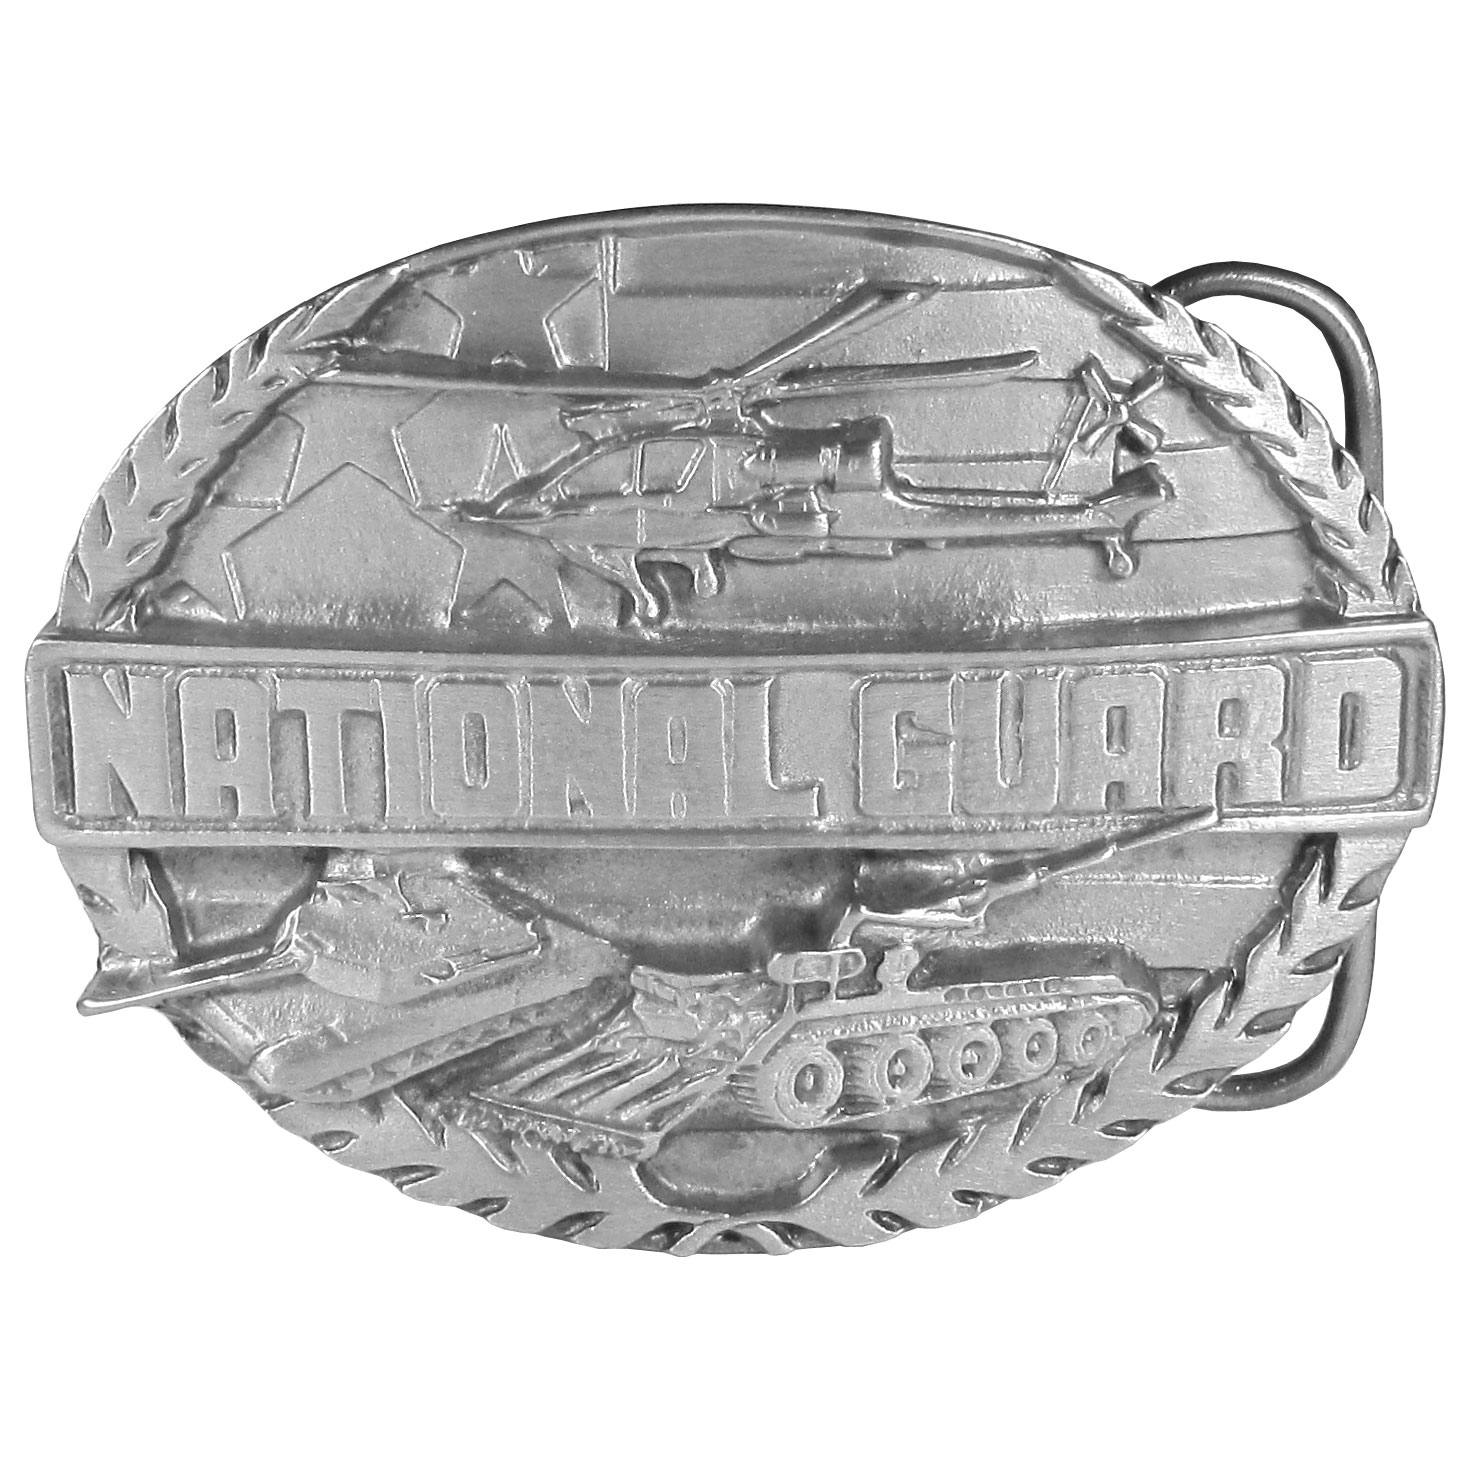 "National Guard Antiqued Belt Buckle - ""This buckle is to celebrate the National Guard. There is an American flag, a helicopter and two tanks on the front as well as """"National Guard"""" written in bold. On the back are the words, """"The men and women of the National Guard perform an invaluable service to the United States in national defense and community services."""" This exquisitely carved buckle is made of fully cast metal with a standard bale that fits up to 2"""" belts."""